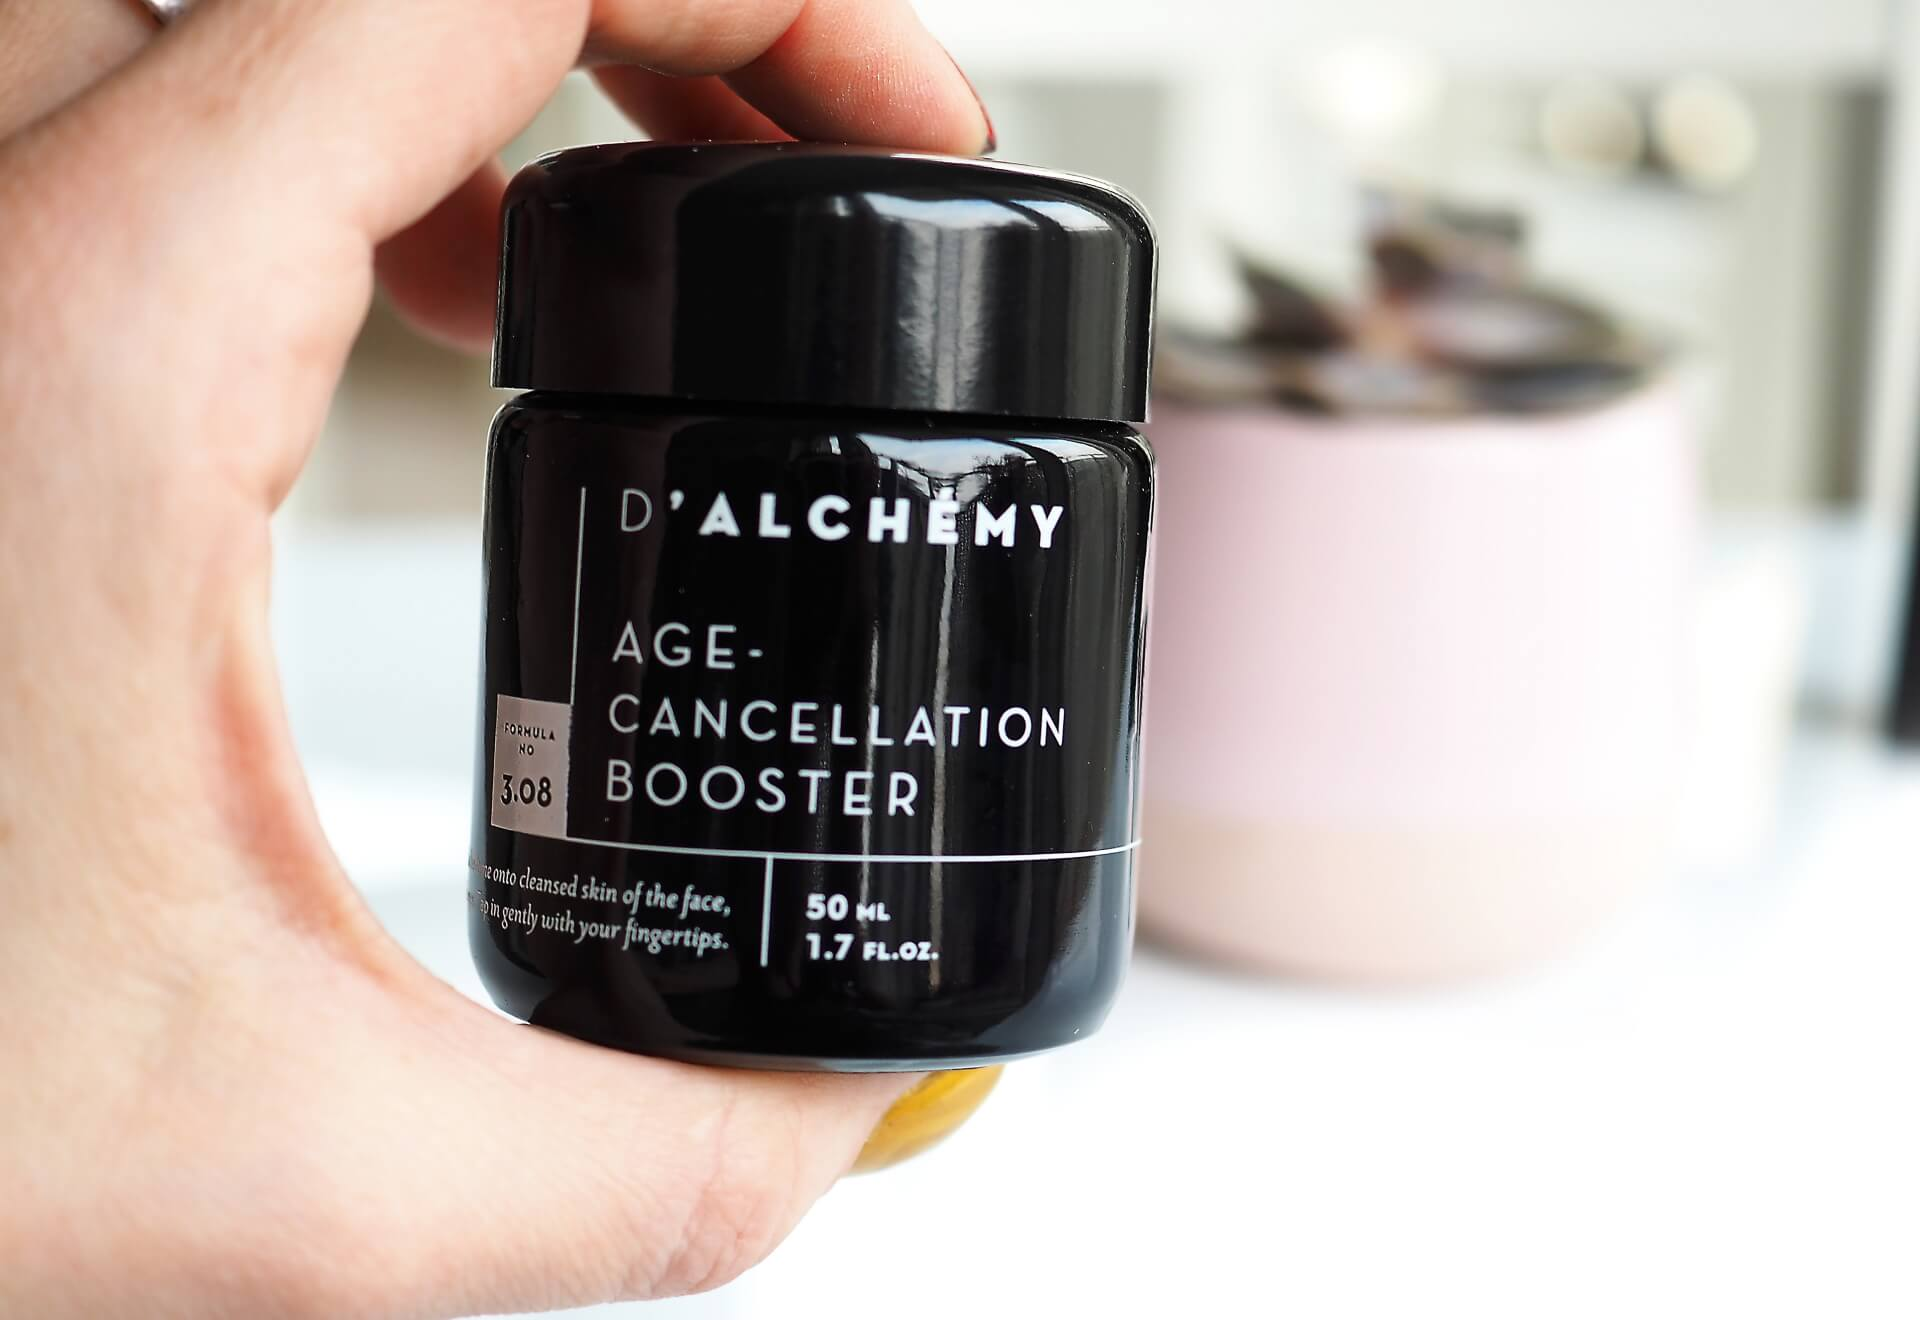 D'ALCHEMY Age Cancellation Booster